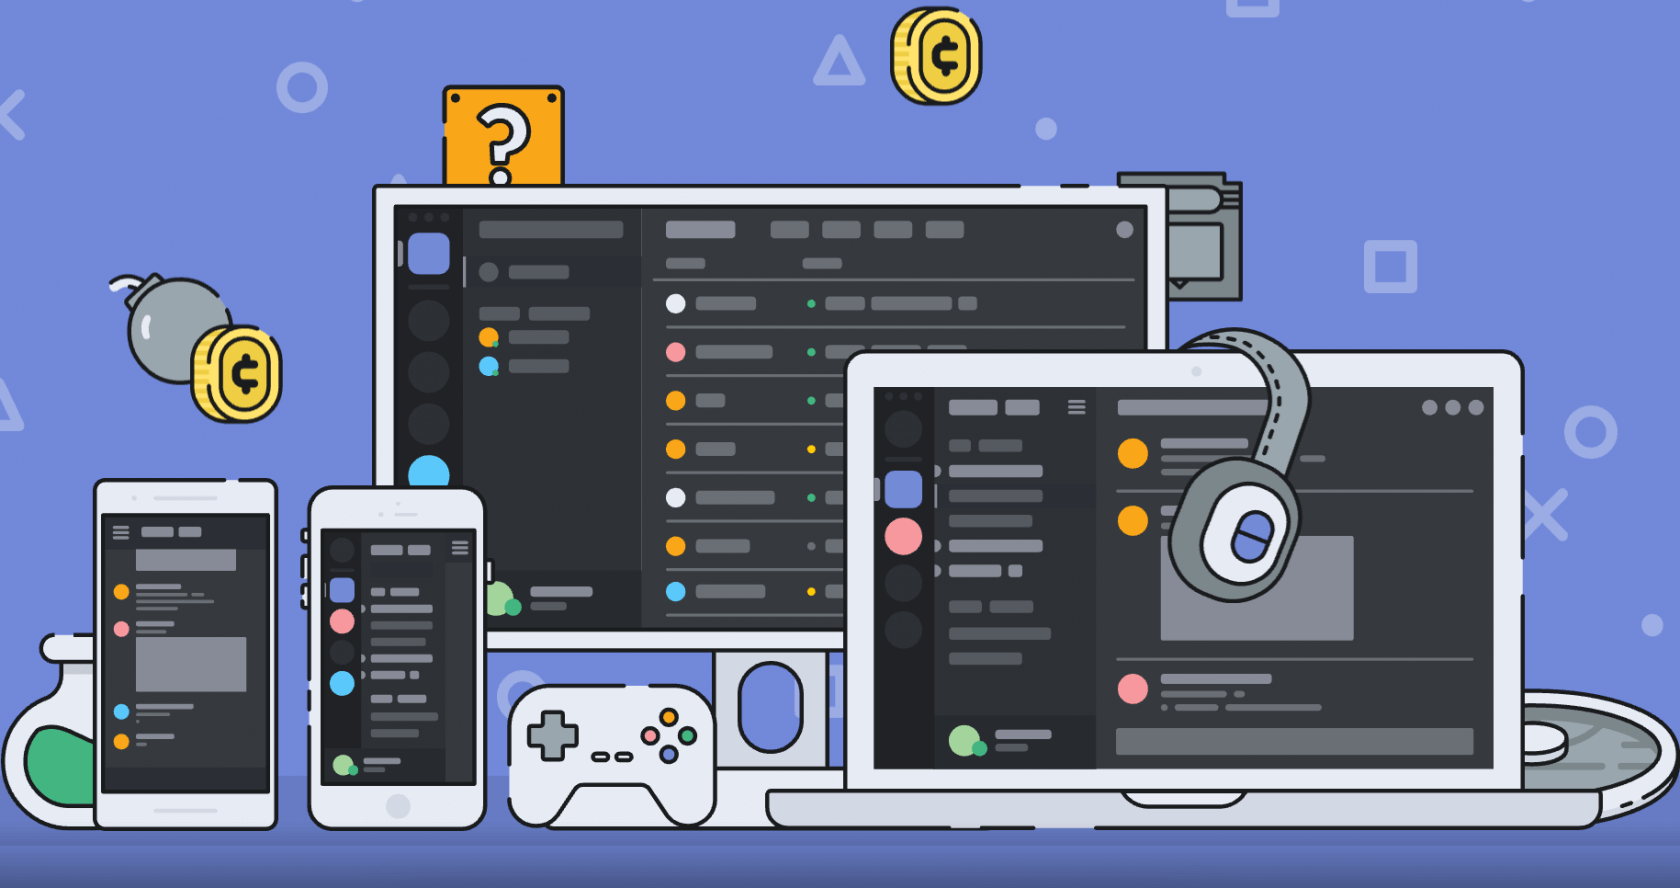 Discord now offers 'Early Access' games through its digital storefront